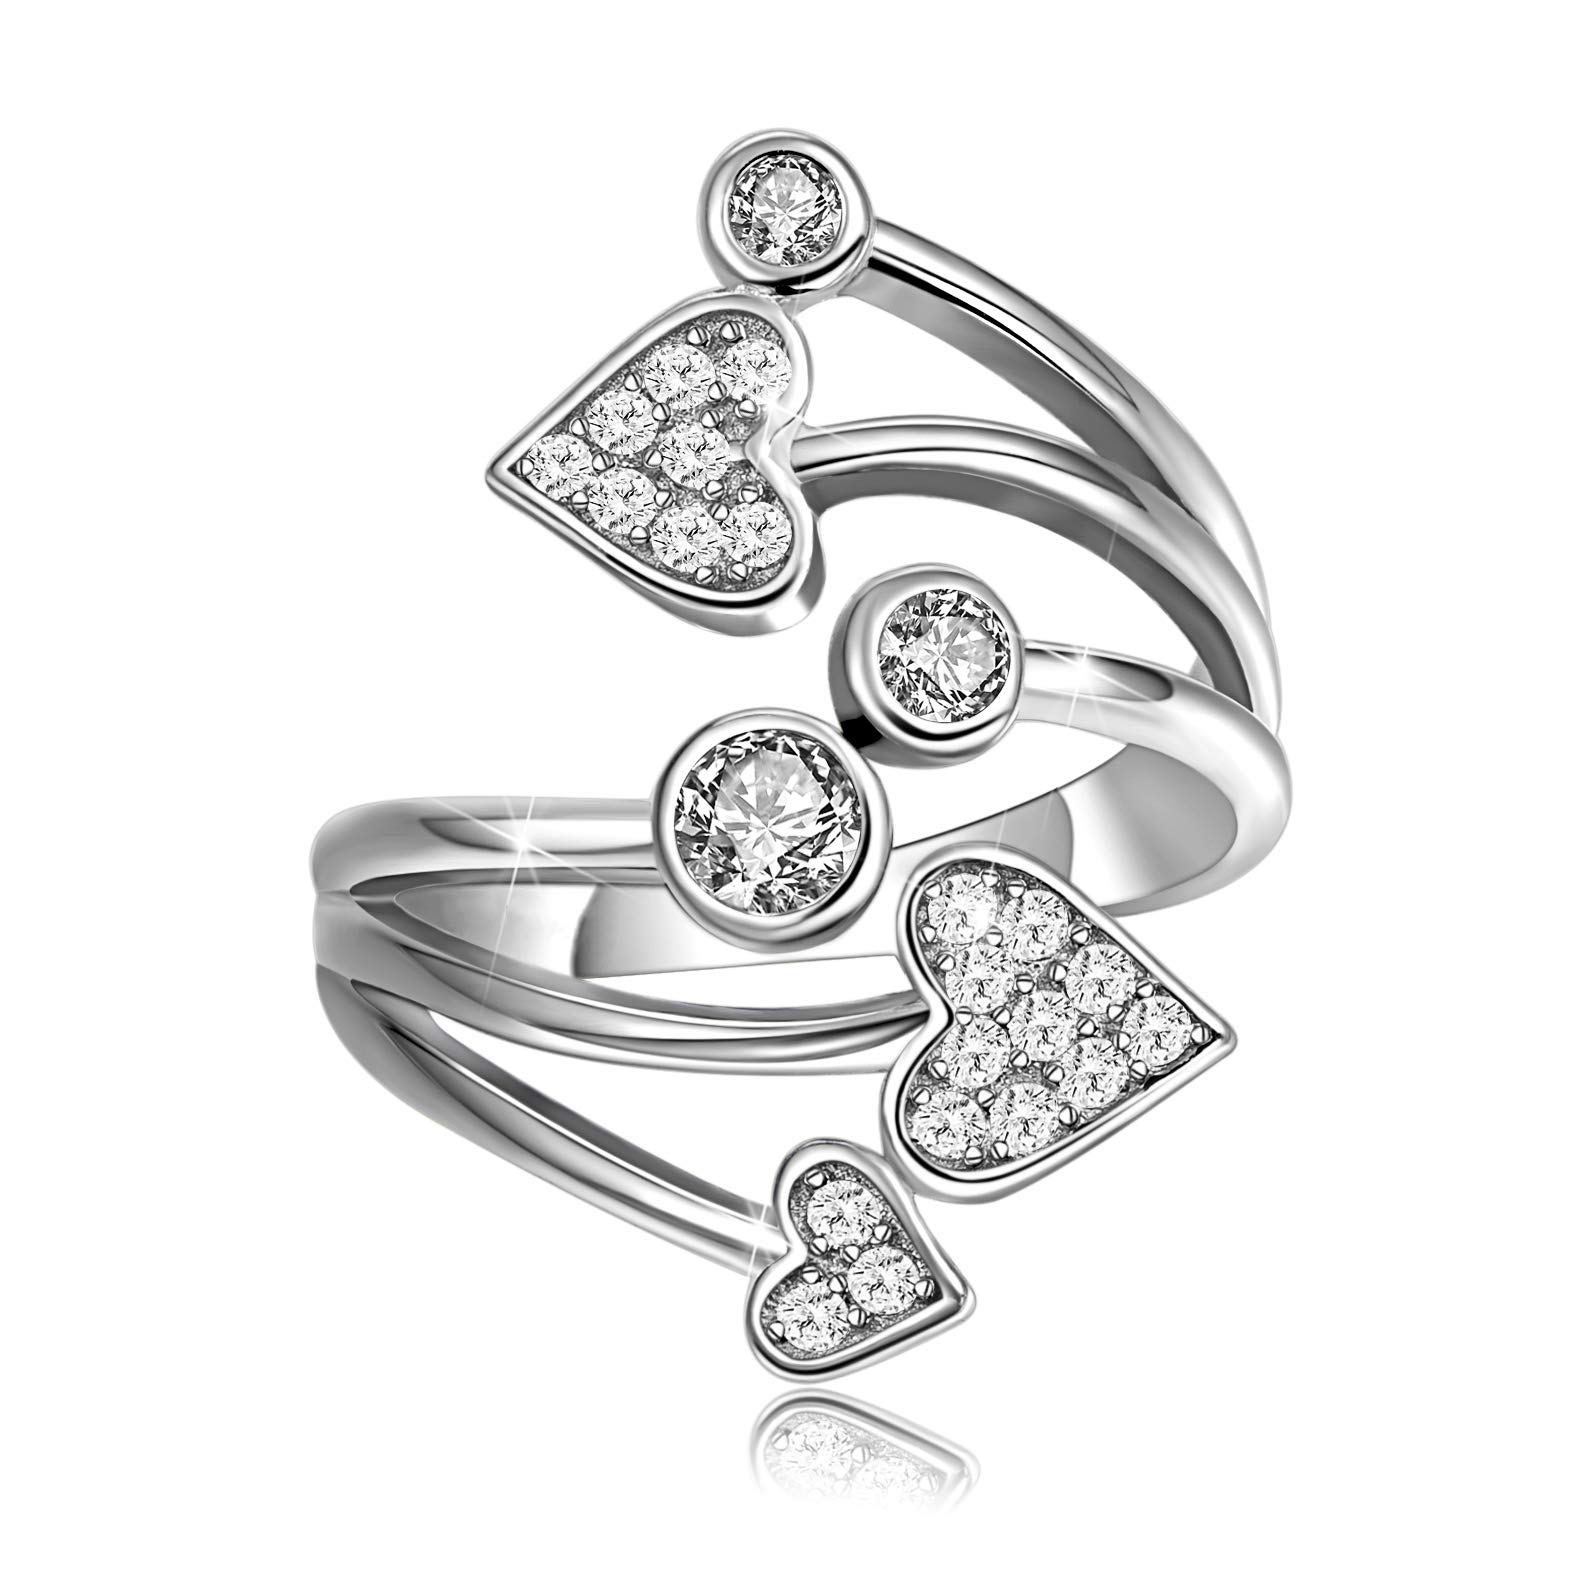 HOTIE 925 Sterling Silver Statement Ring, Love Heart CZ Rings for Women Girls, Cubic Zirconia Ring Band